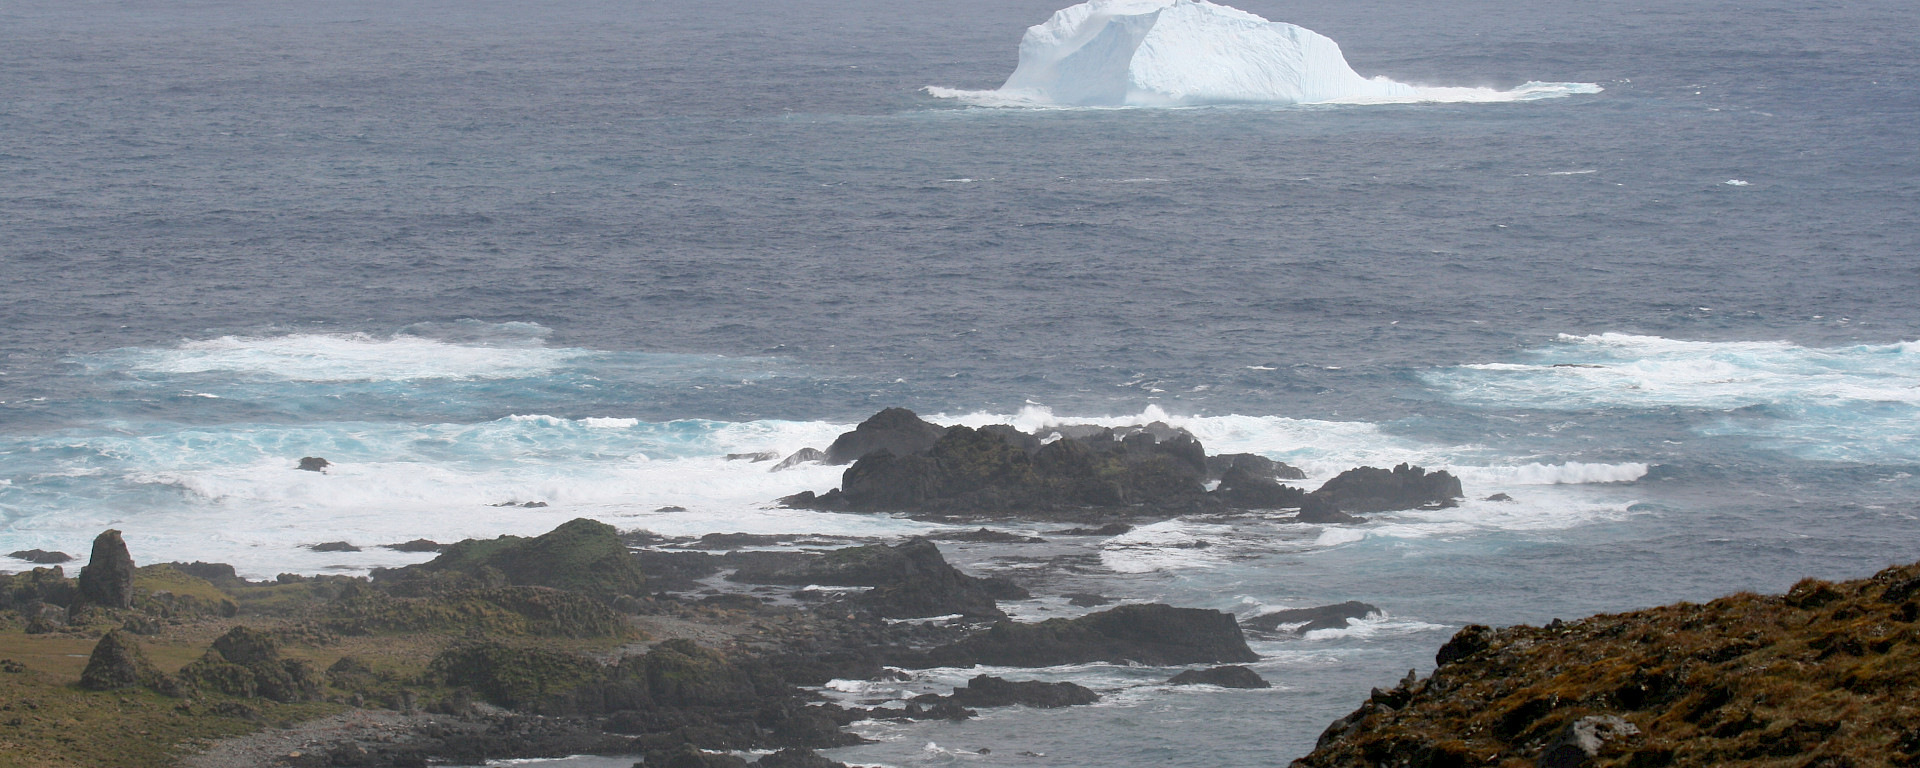 Iceberg at Bauer Bay off the west coast of Macquarie Island